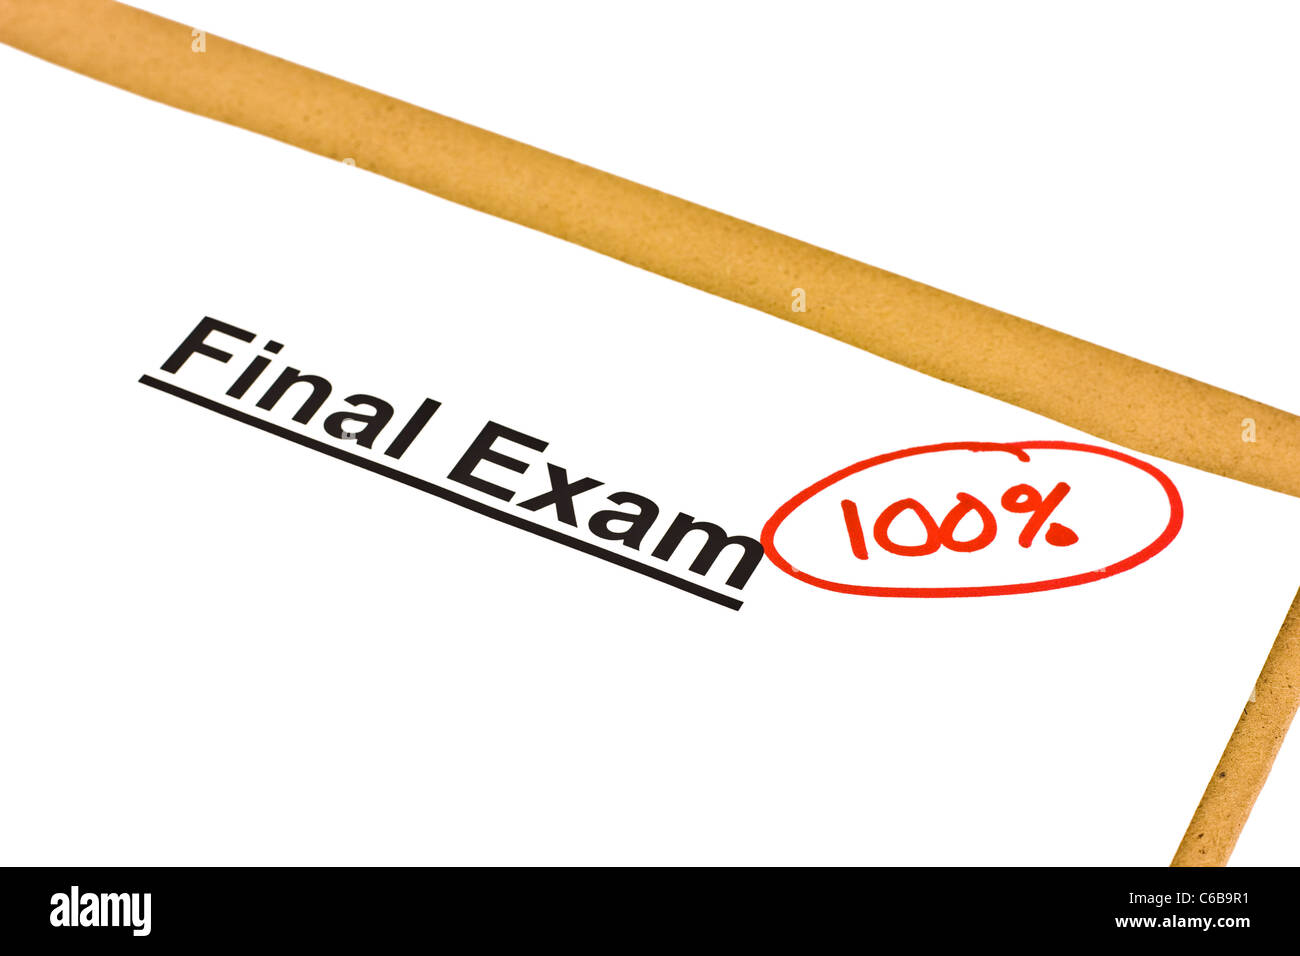 Final exam marked with 100% isolated on white. - Stock Image